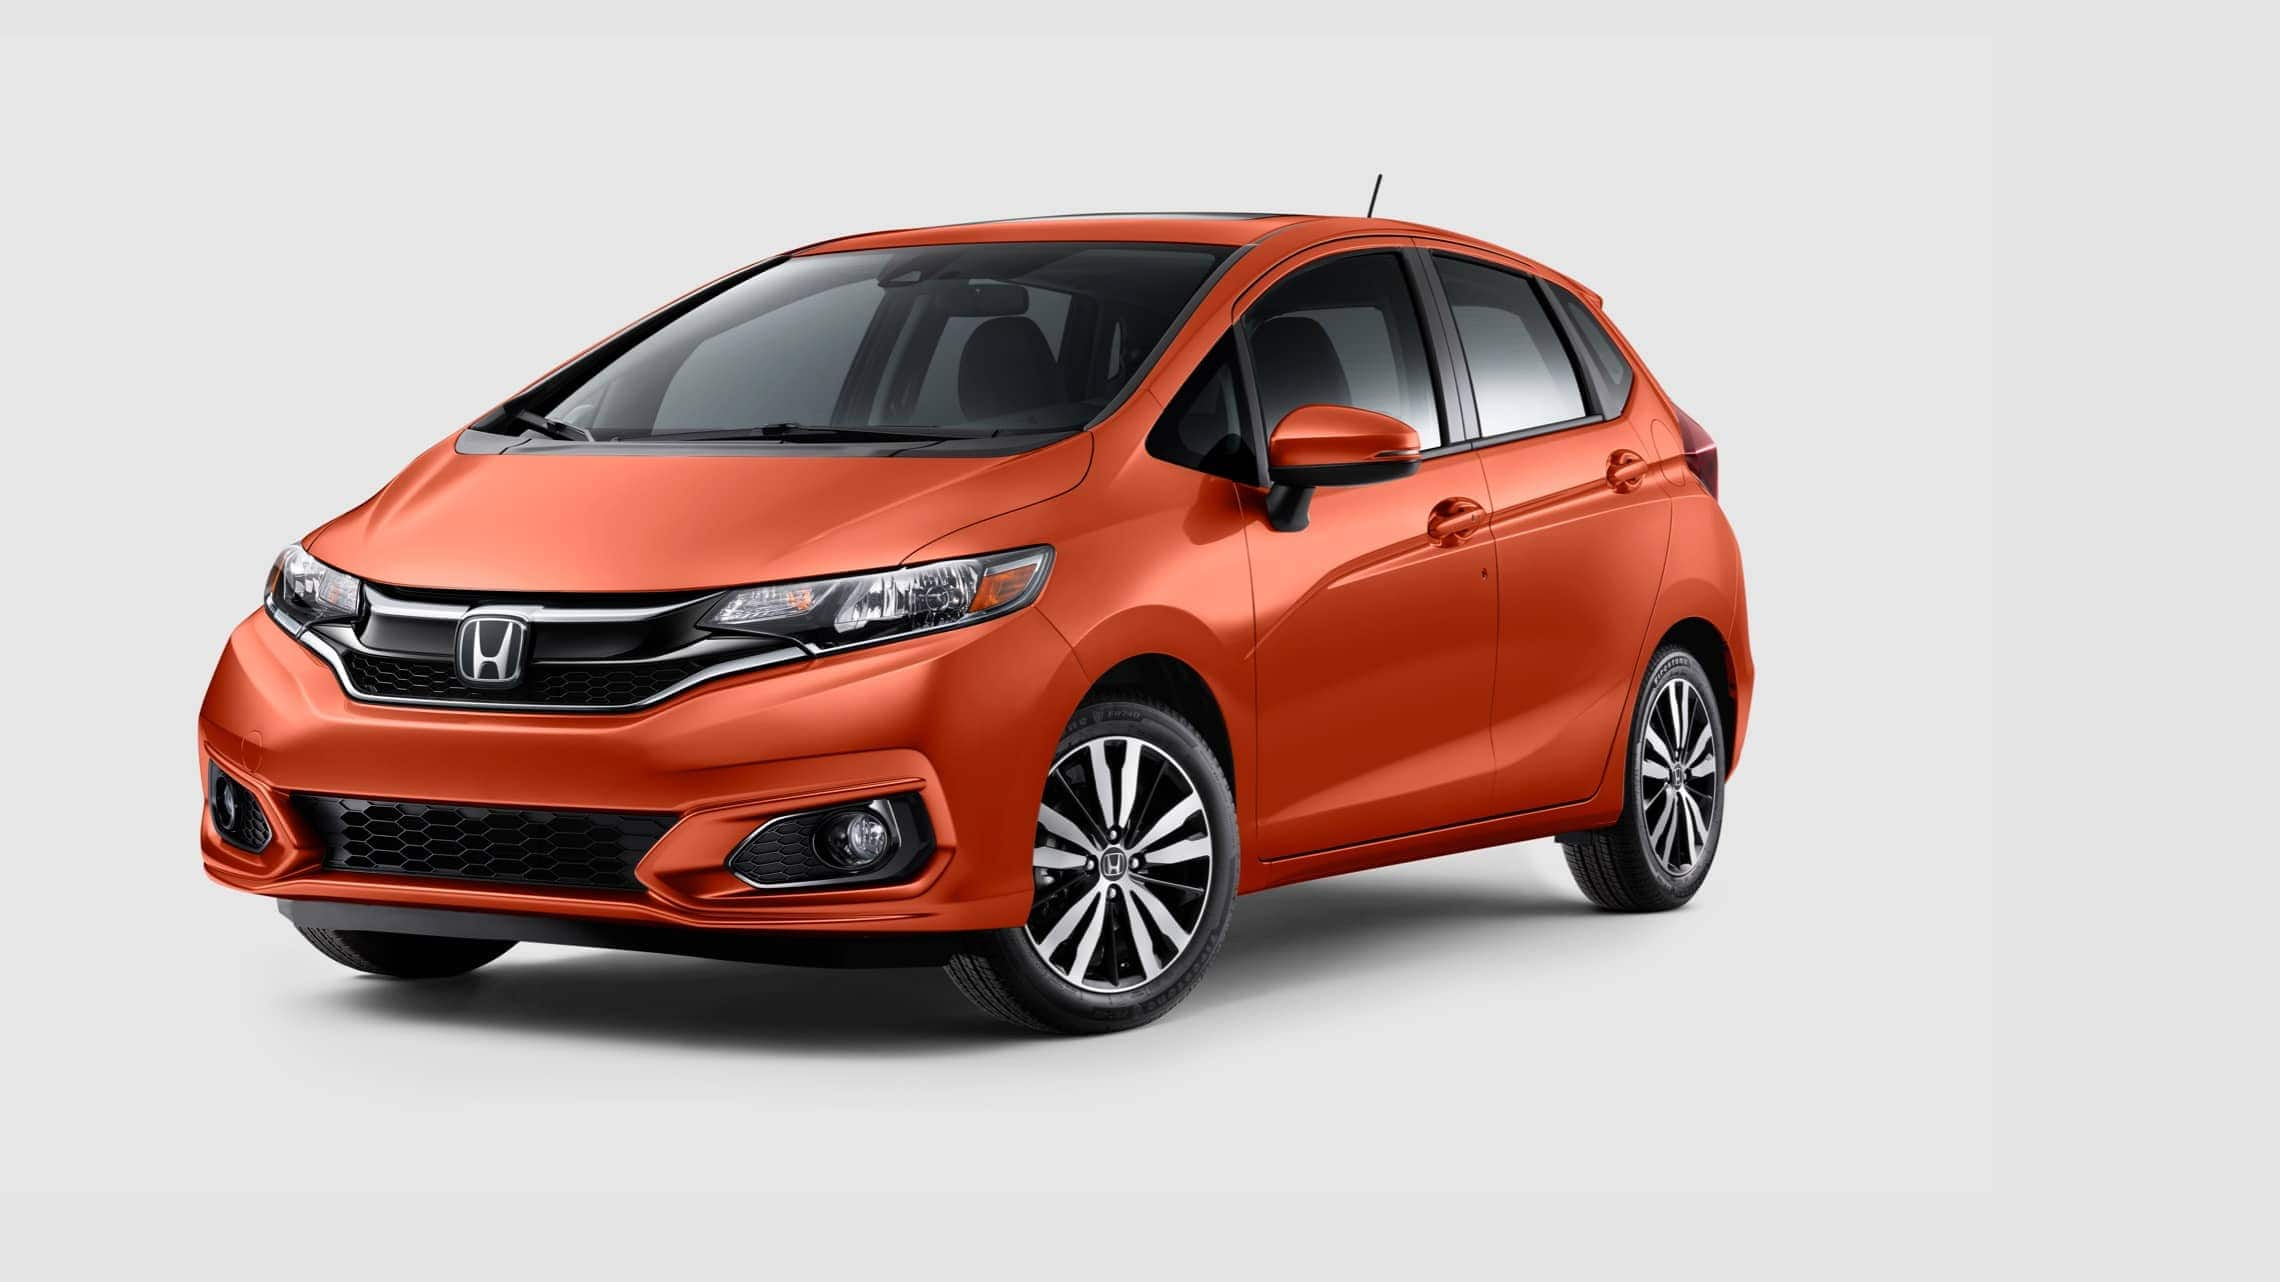 Front 3/4 driver side view of 2019 Honda Fit EX-L in Orange Fury.